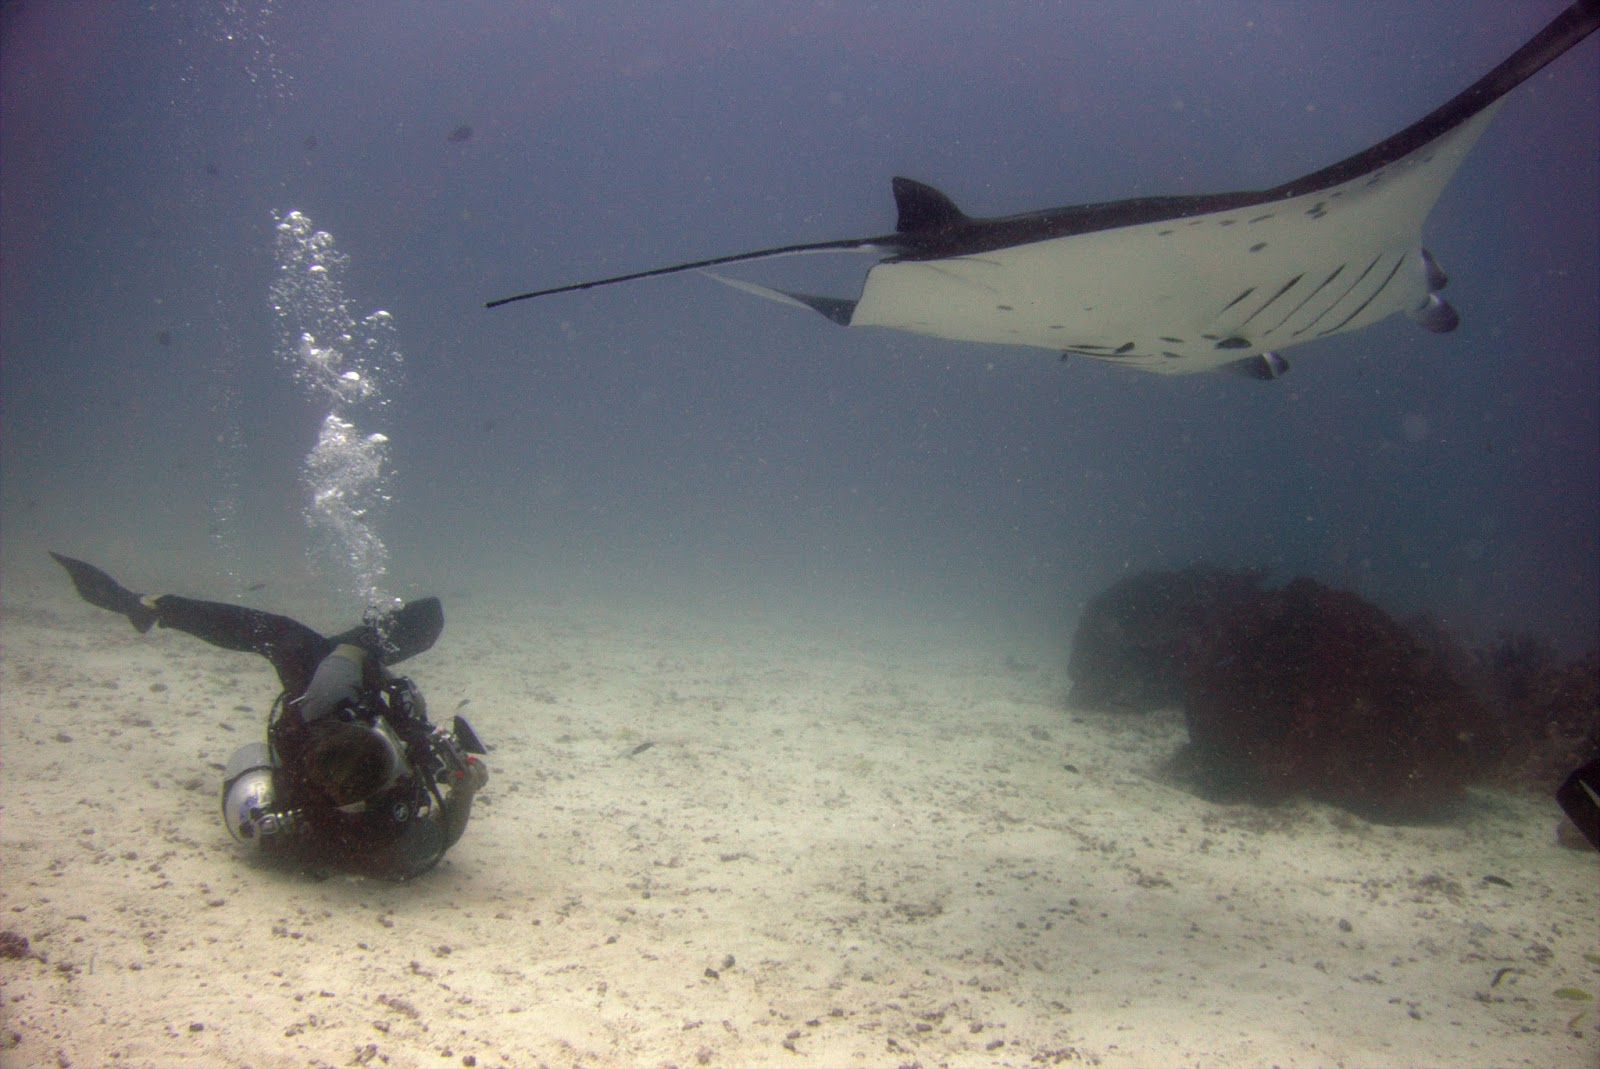 Manta ray swimming underwater with its dorsal fins spread open viewed - Josie Taking The Perfect Belly Id Shot